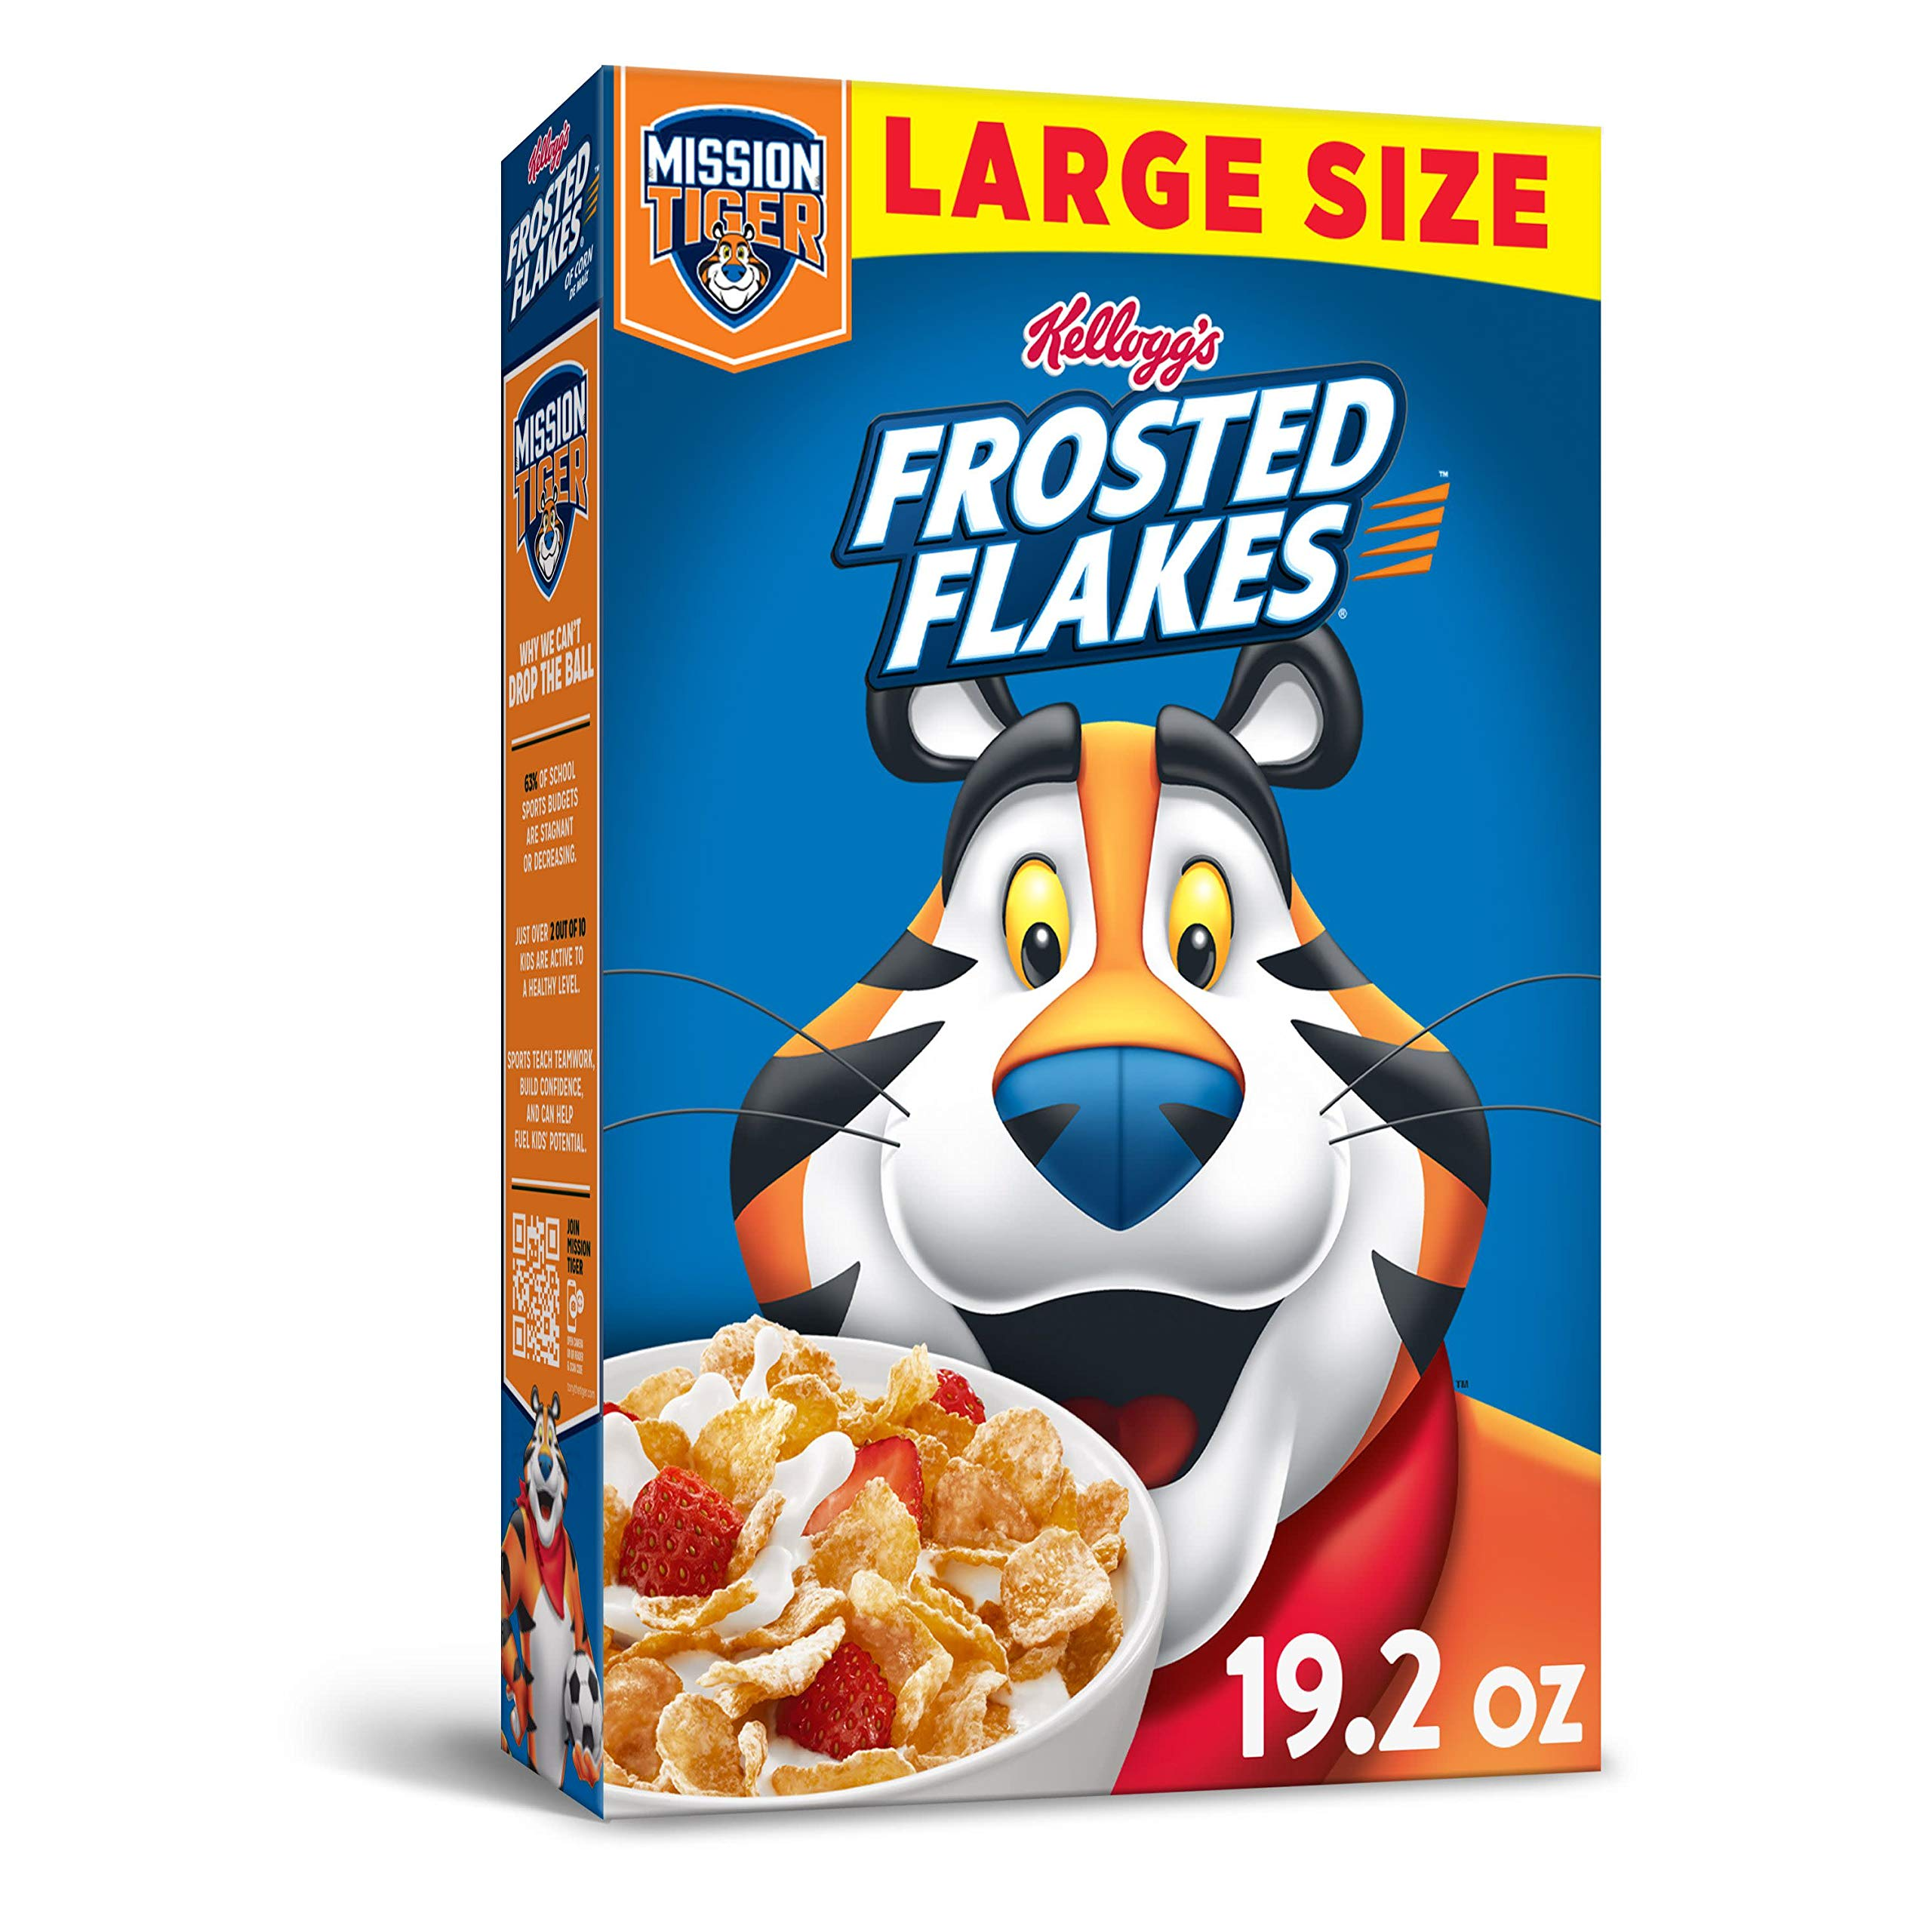 Kellogg's Frosted Flakes, Breakfast Cereal, Original, Excellent Source of 7 Vitamins and Minerals, Large Size, 19.2oz Box